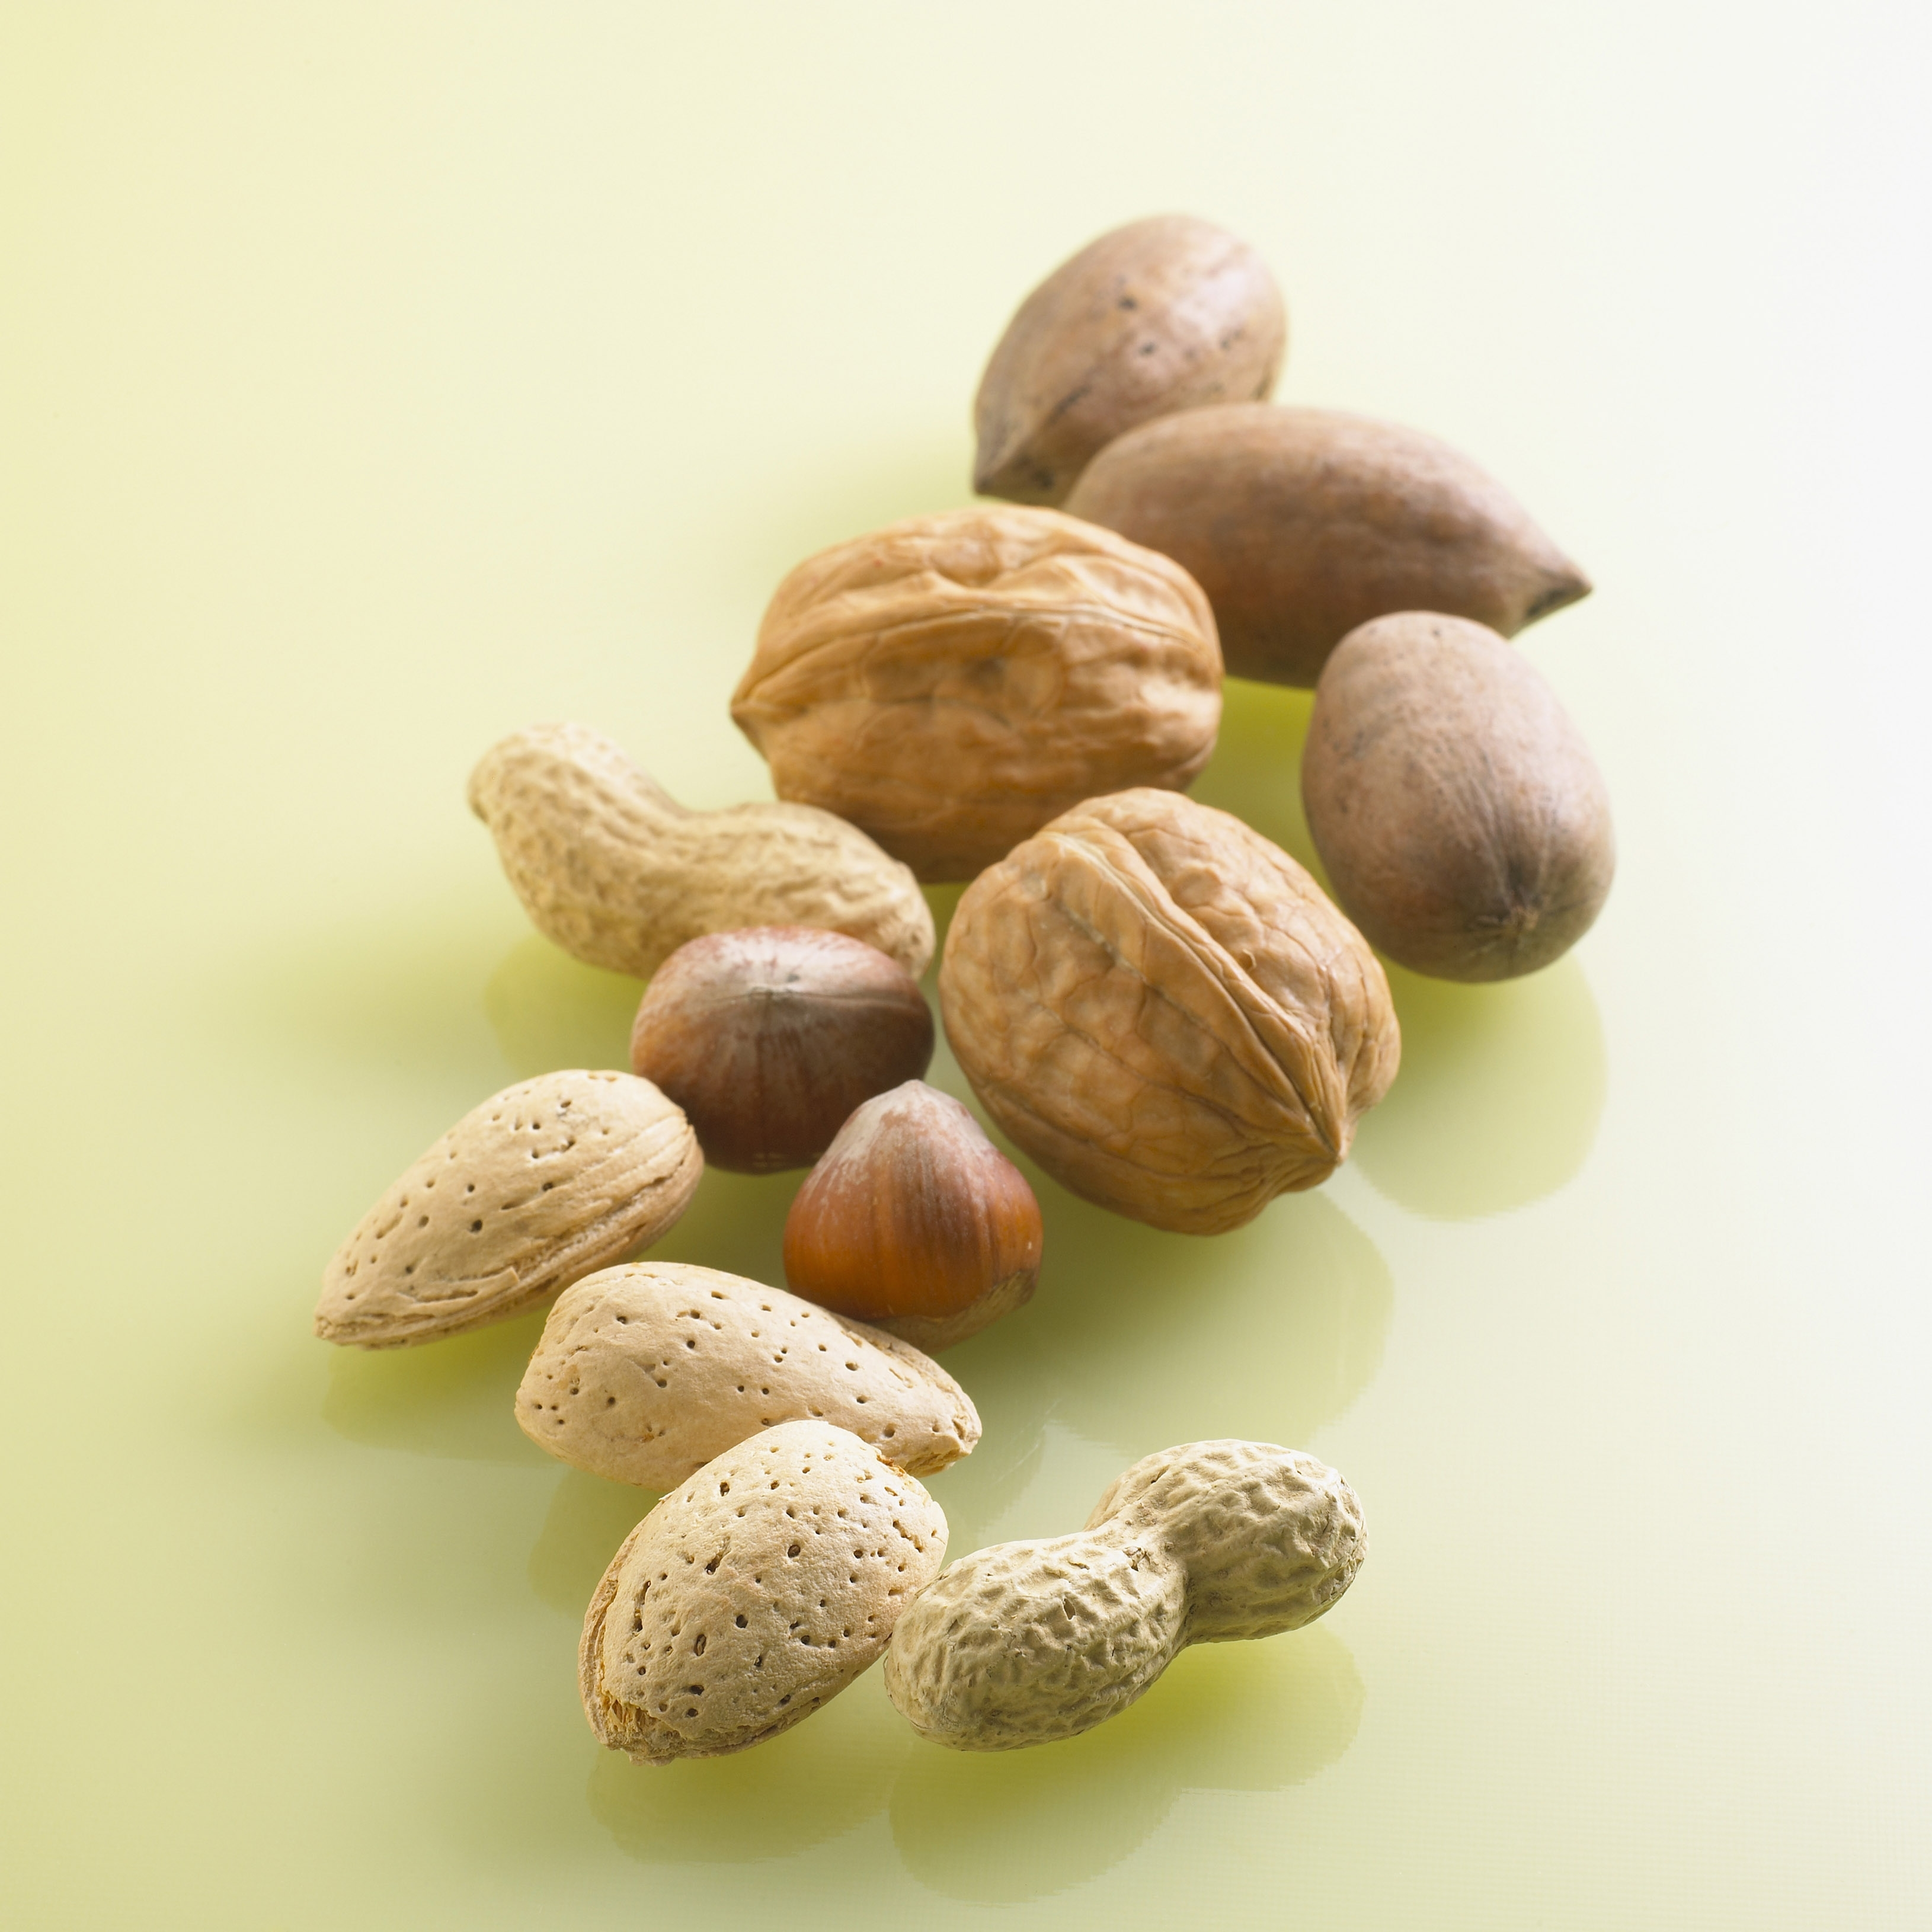 nuts HD Wallpaper